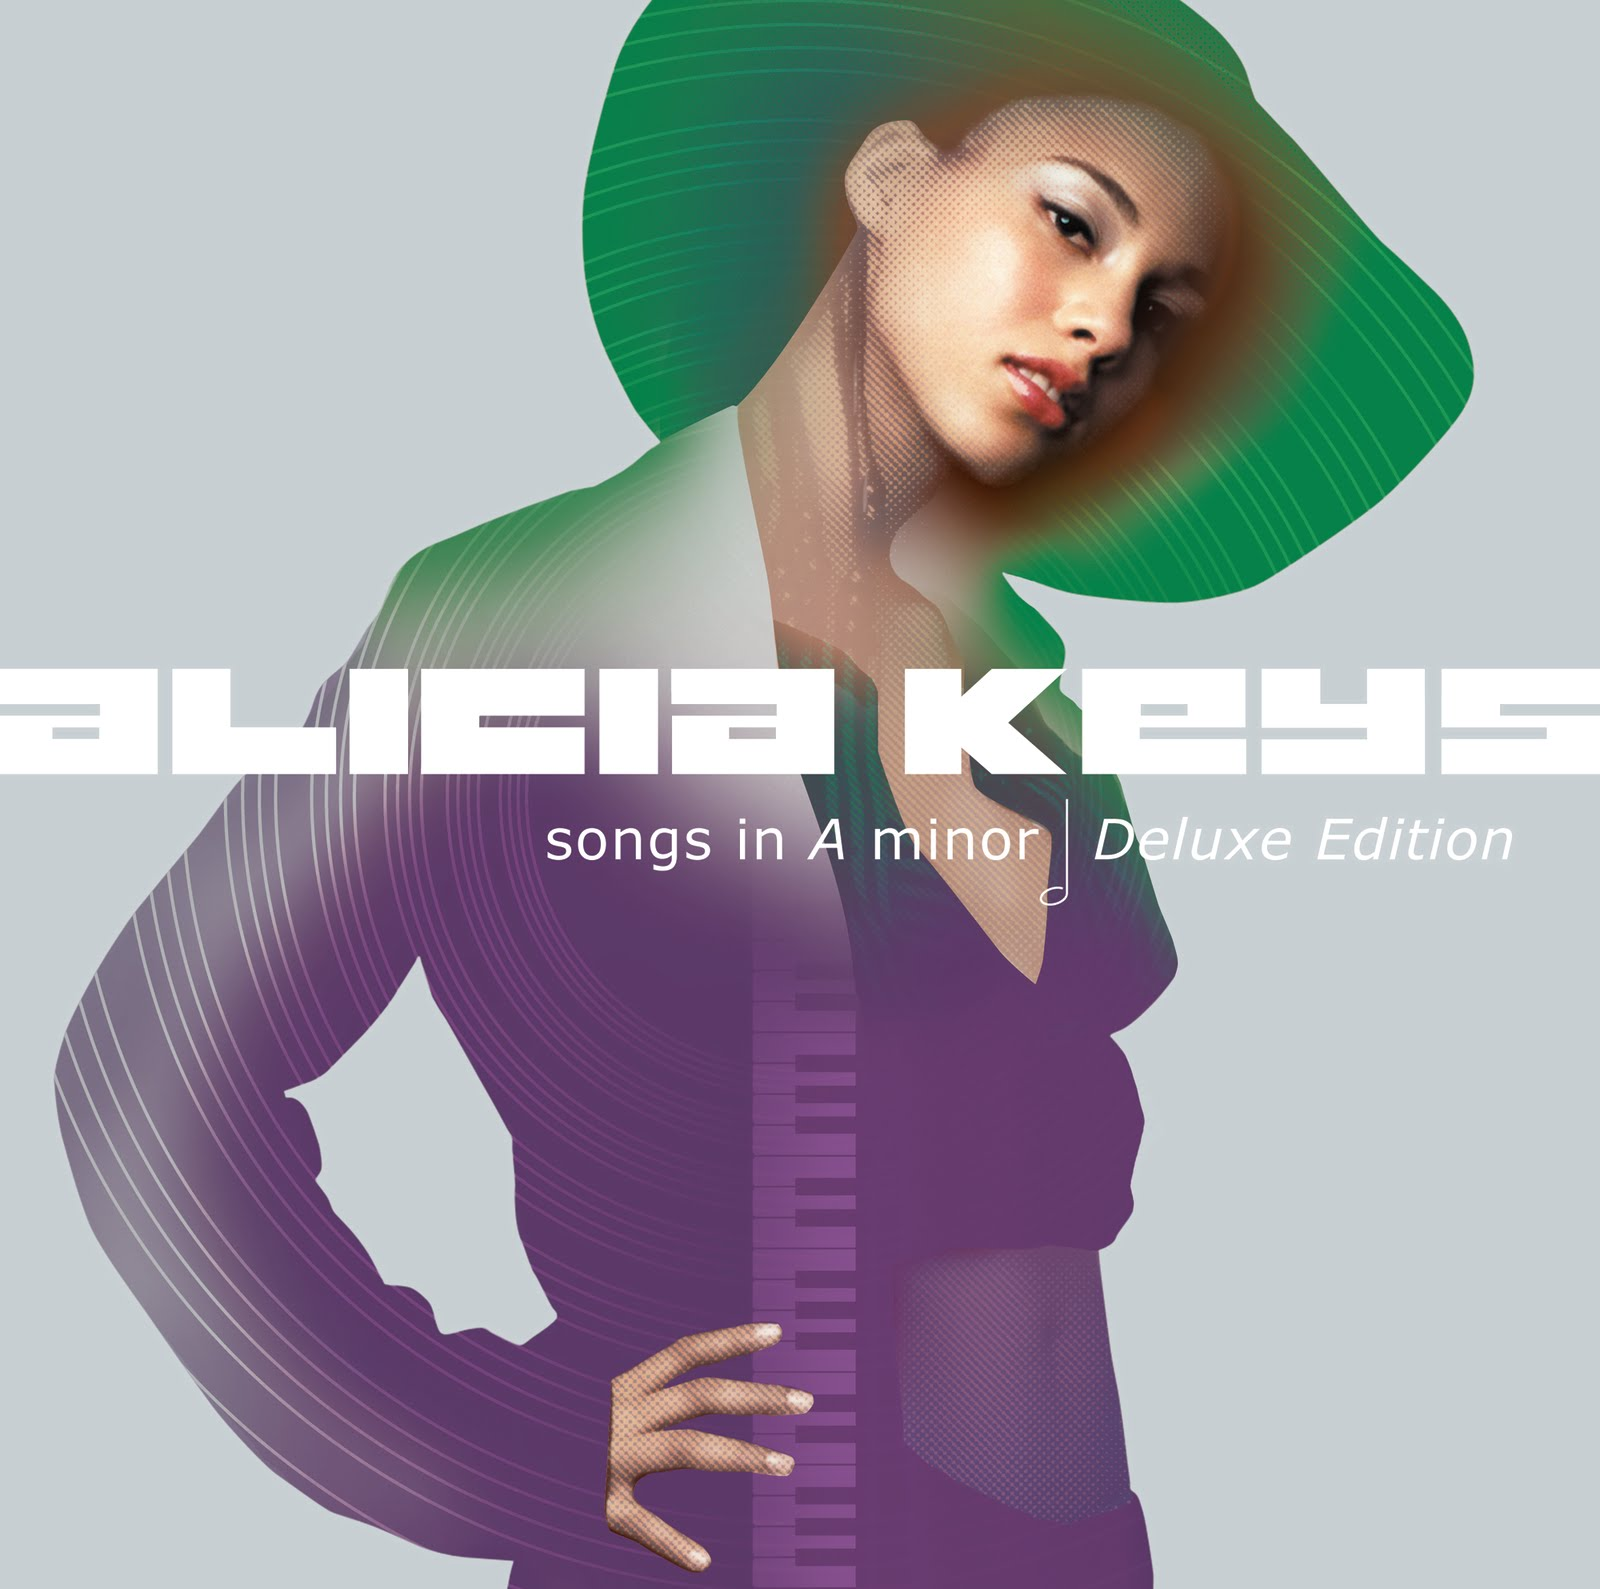 Alicia Keys – Songs In A Minor (10th Anniversary Edition) (Deluxe Edition)